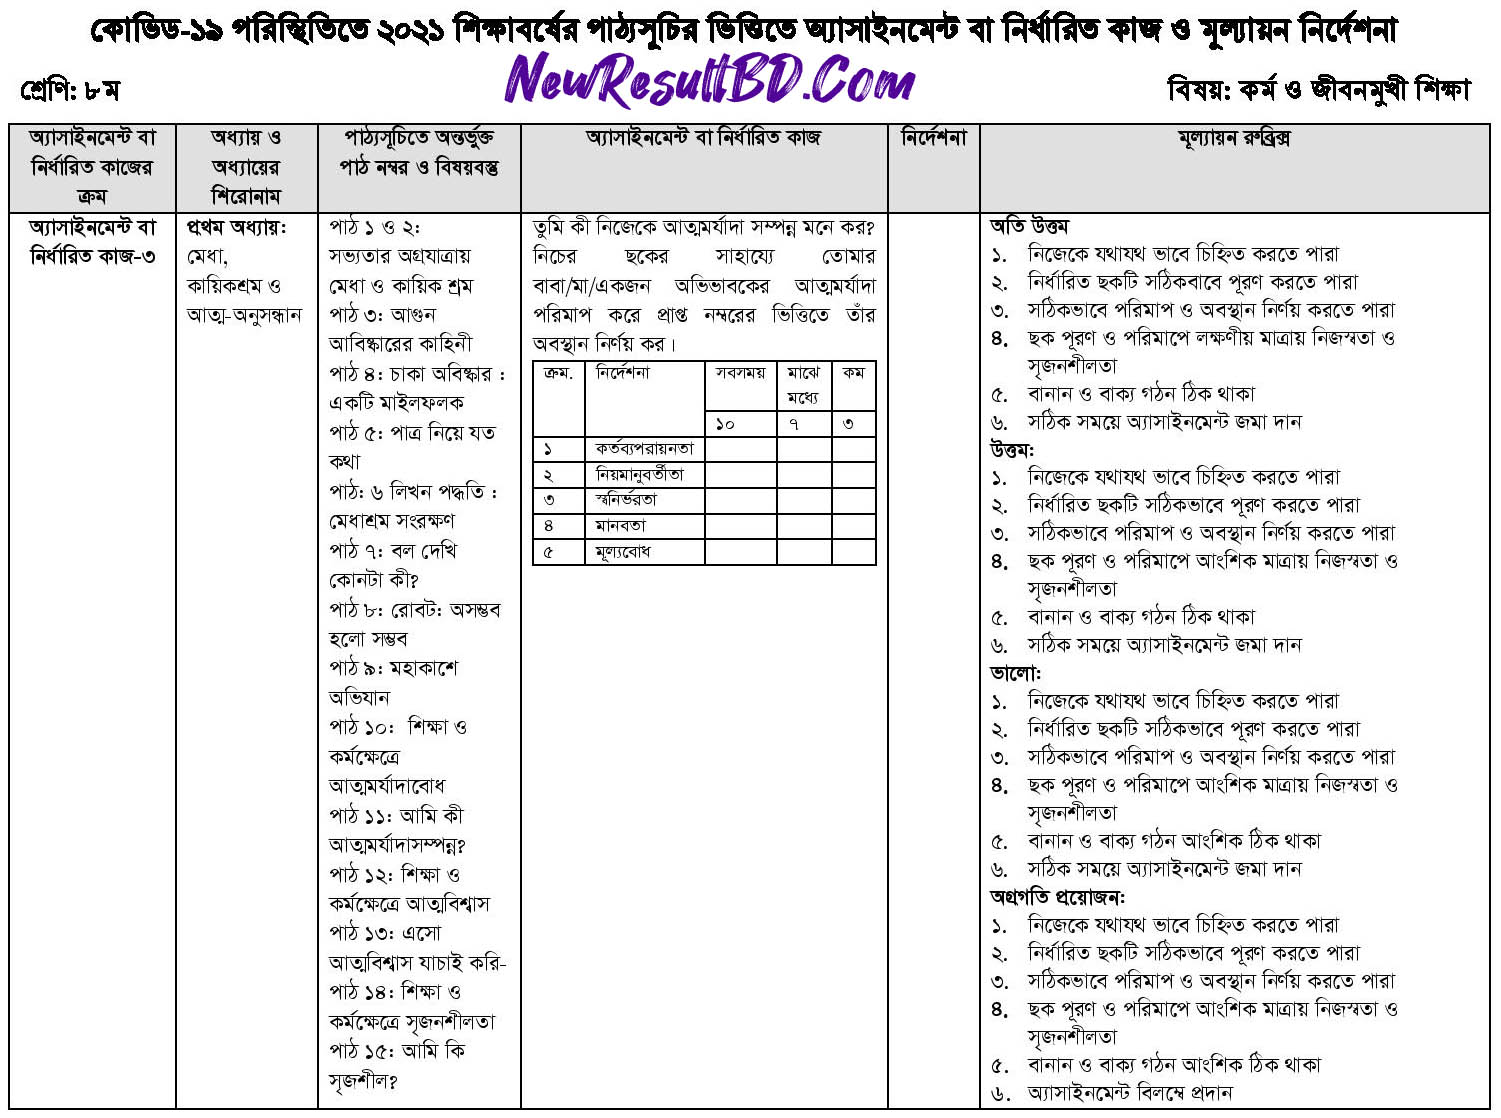 Class 8 Work and Life Oriented Education 15th Week Assignment Answer